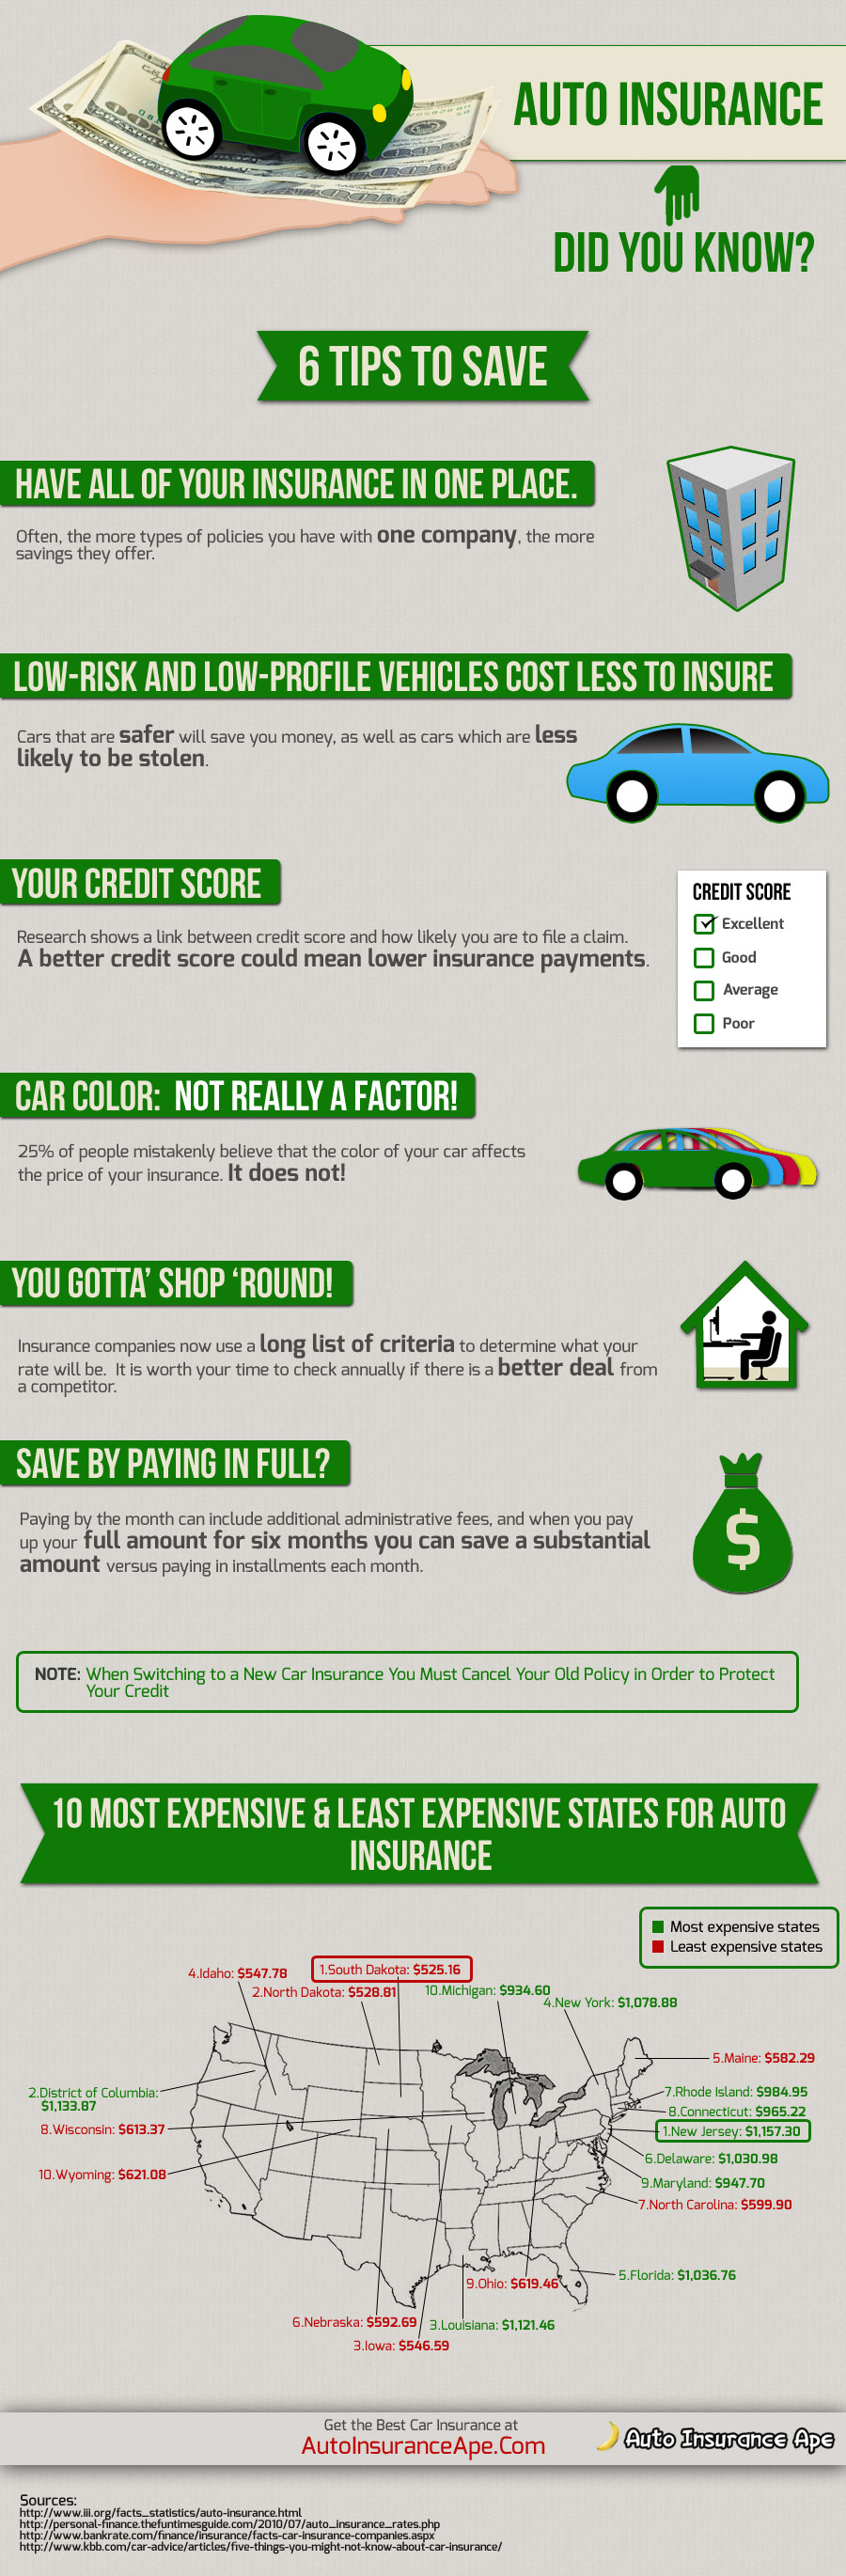 on how to maximize your savings when shopping for cheap car insurance